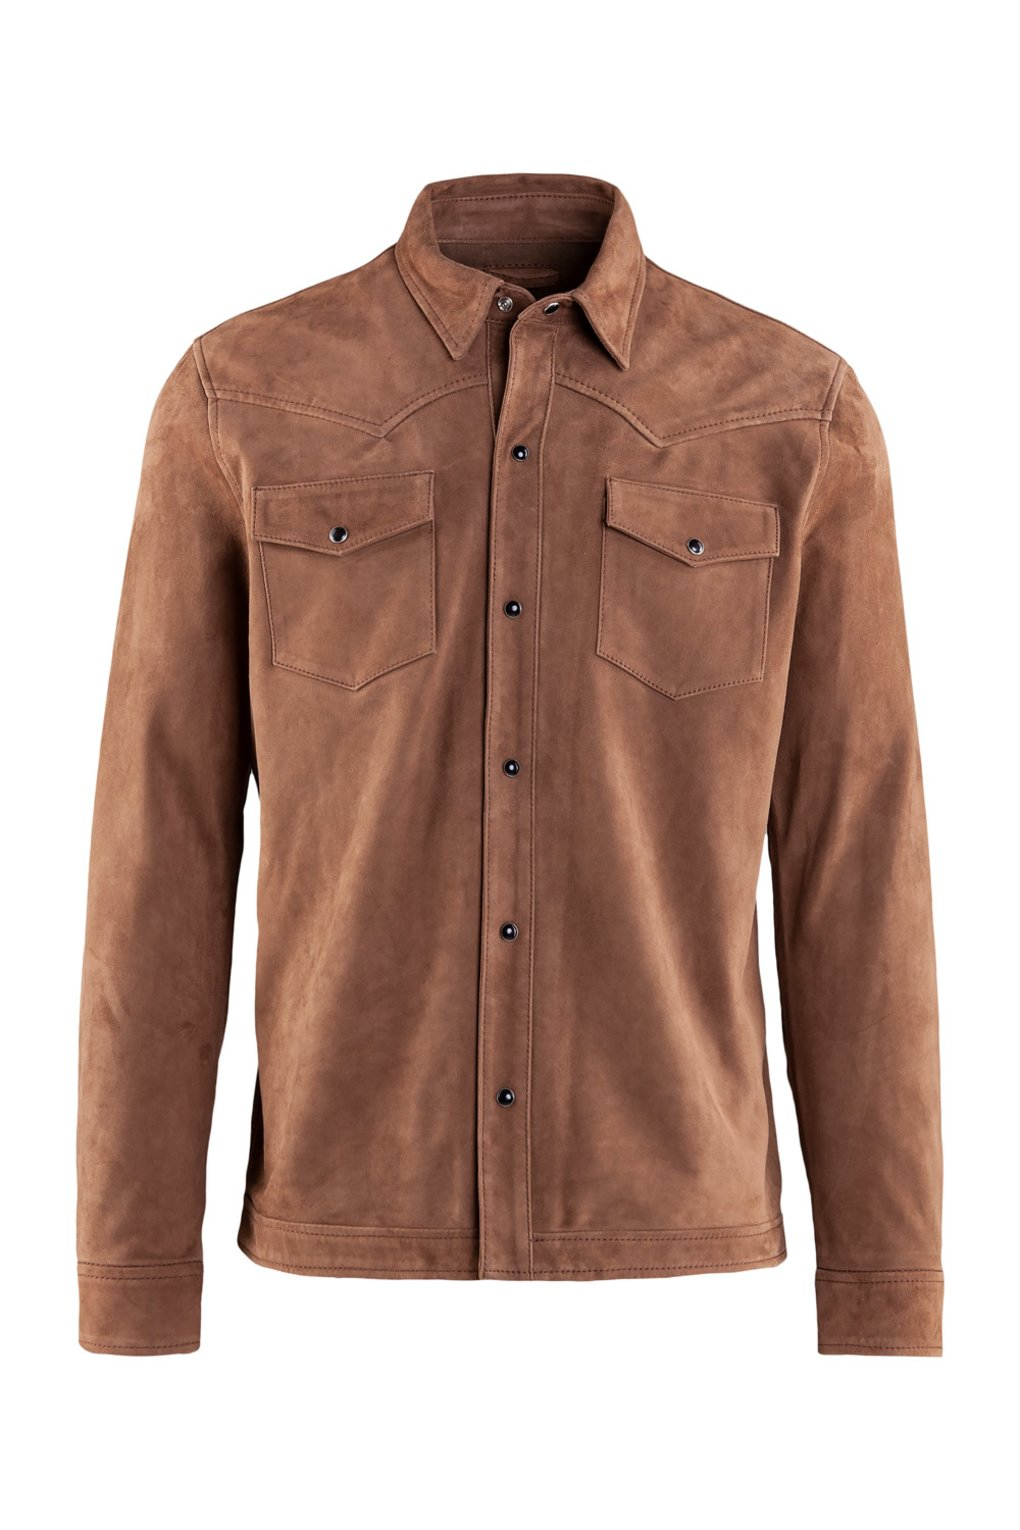 Shirt-jacket in suede leather